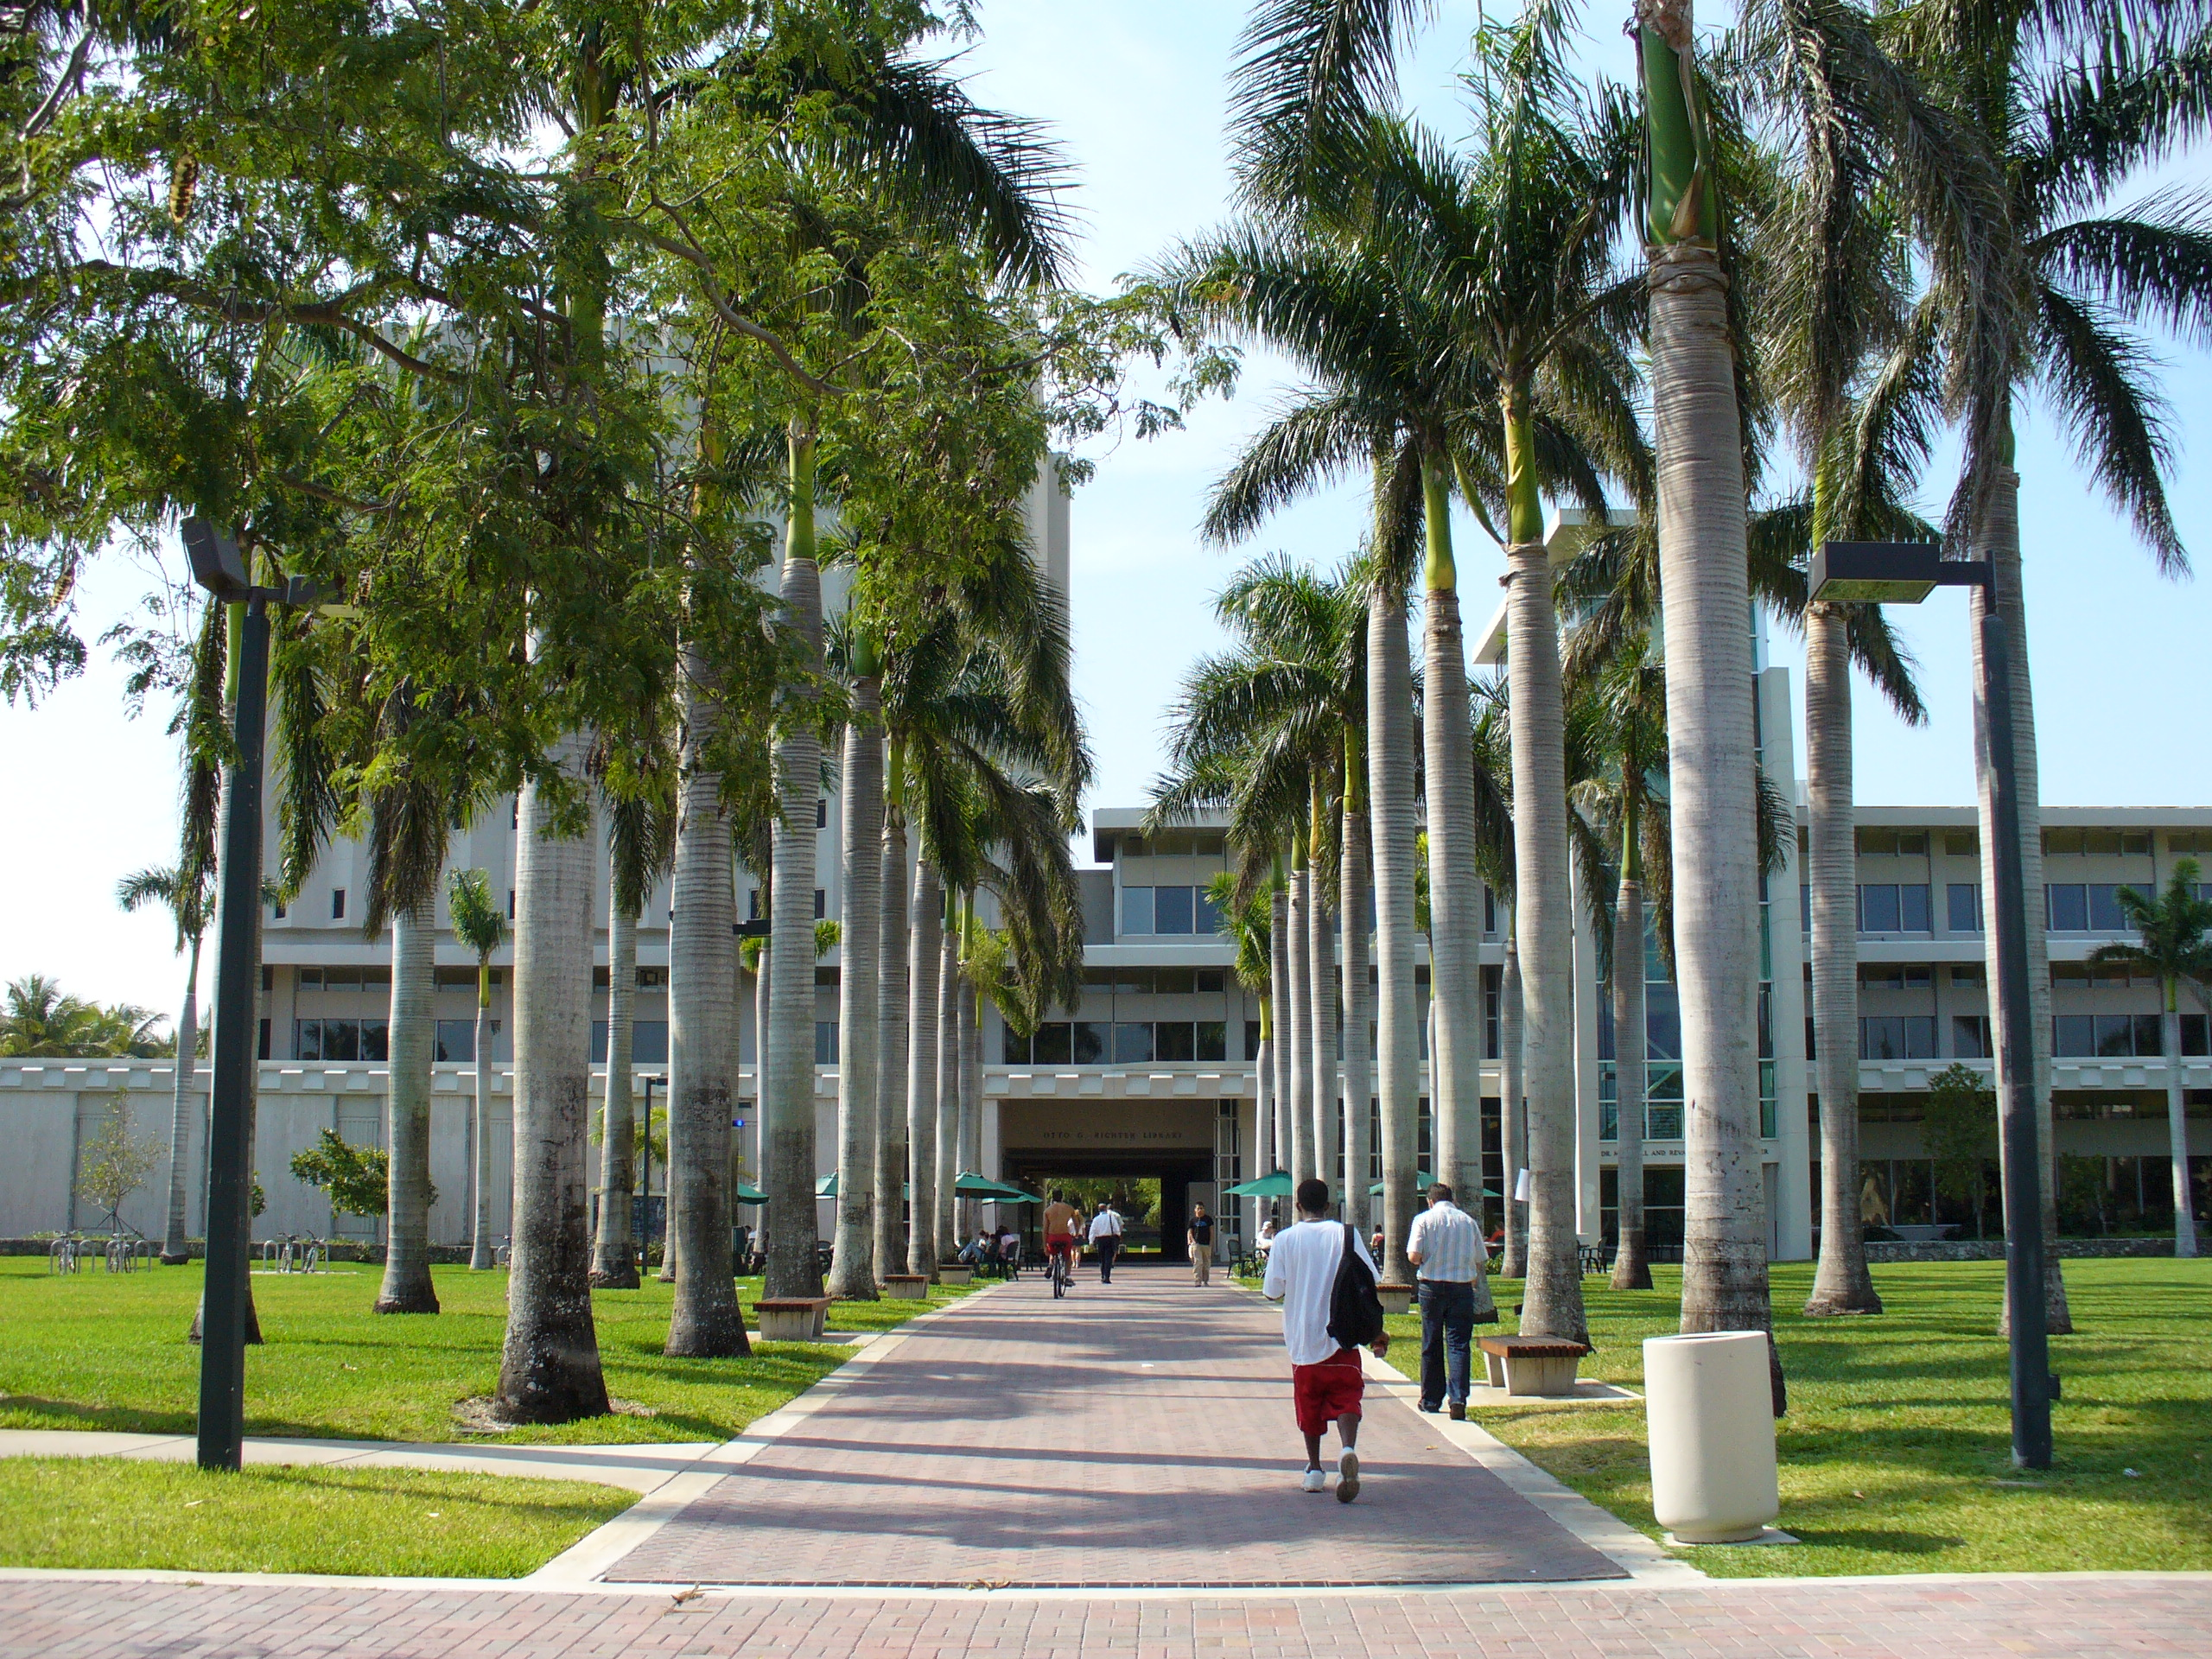 http://upload.wikimedia.org/wikipedia/commons/3/3e/University_of_Miami_Otto_G._Richter_Library.jpg